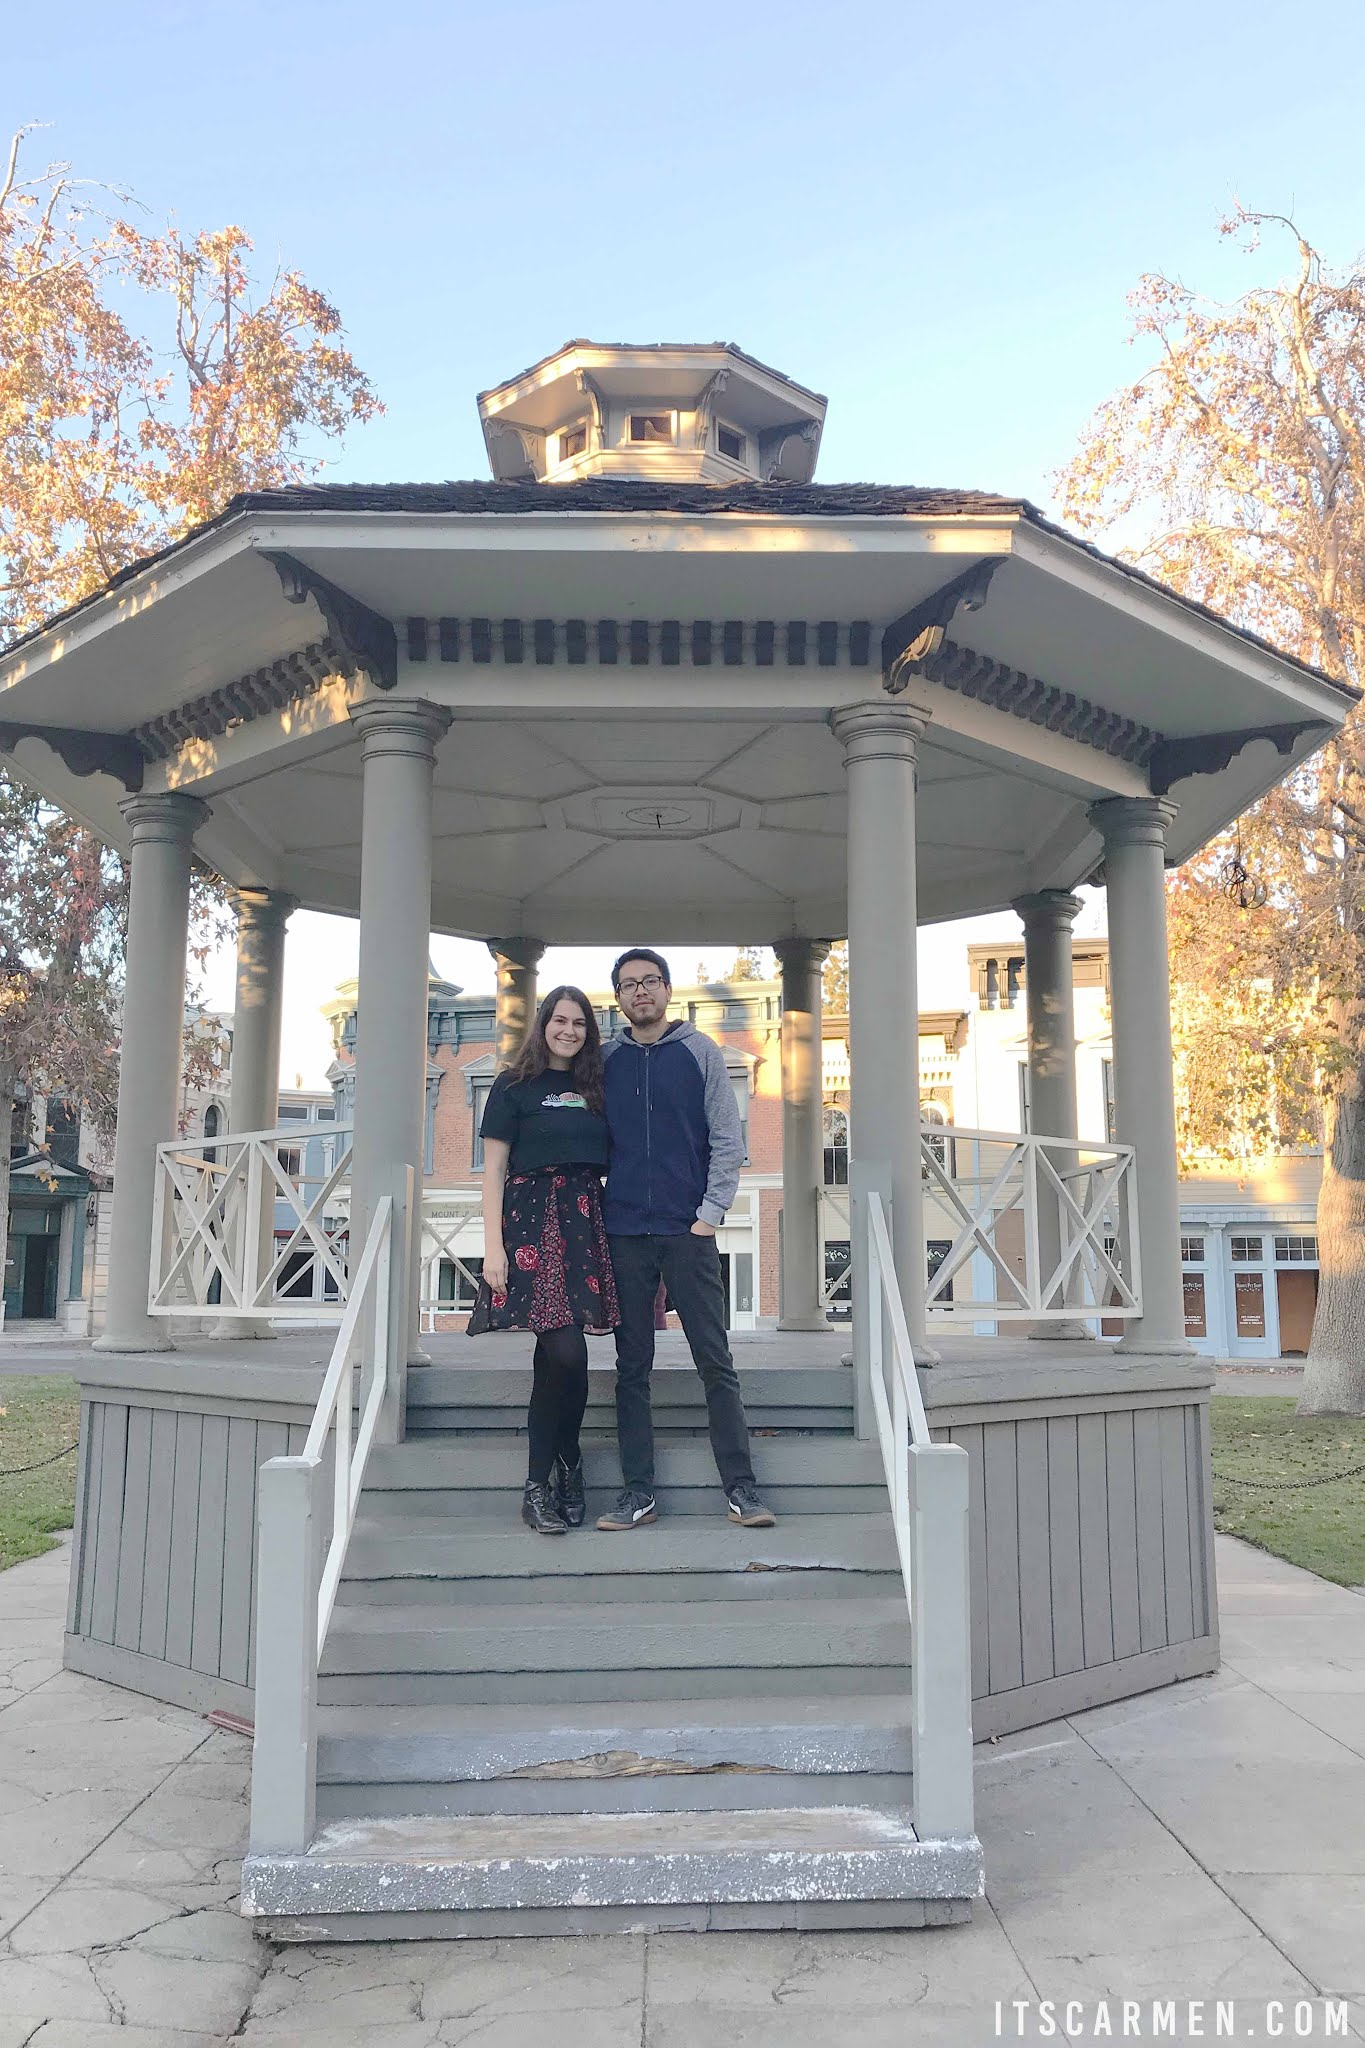 The iconic gazebo in Stars Hollow Where Was Gilmore Girls Filmed? Where Is Stars Hollow? where was gilmore girls filmed where is gilmore girls filmed gilmore girls filming location where is stars hollow filmed gilmore girls set where did they film gilmore girls gilmore girls location  stars hollow location